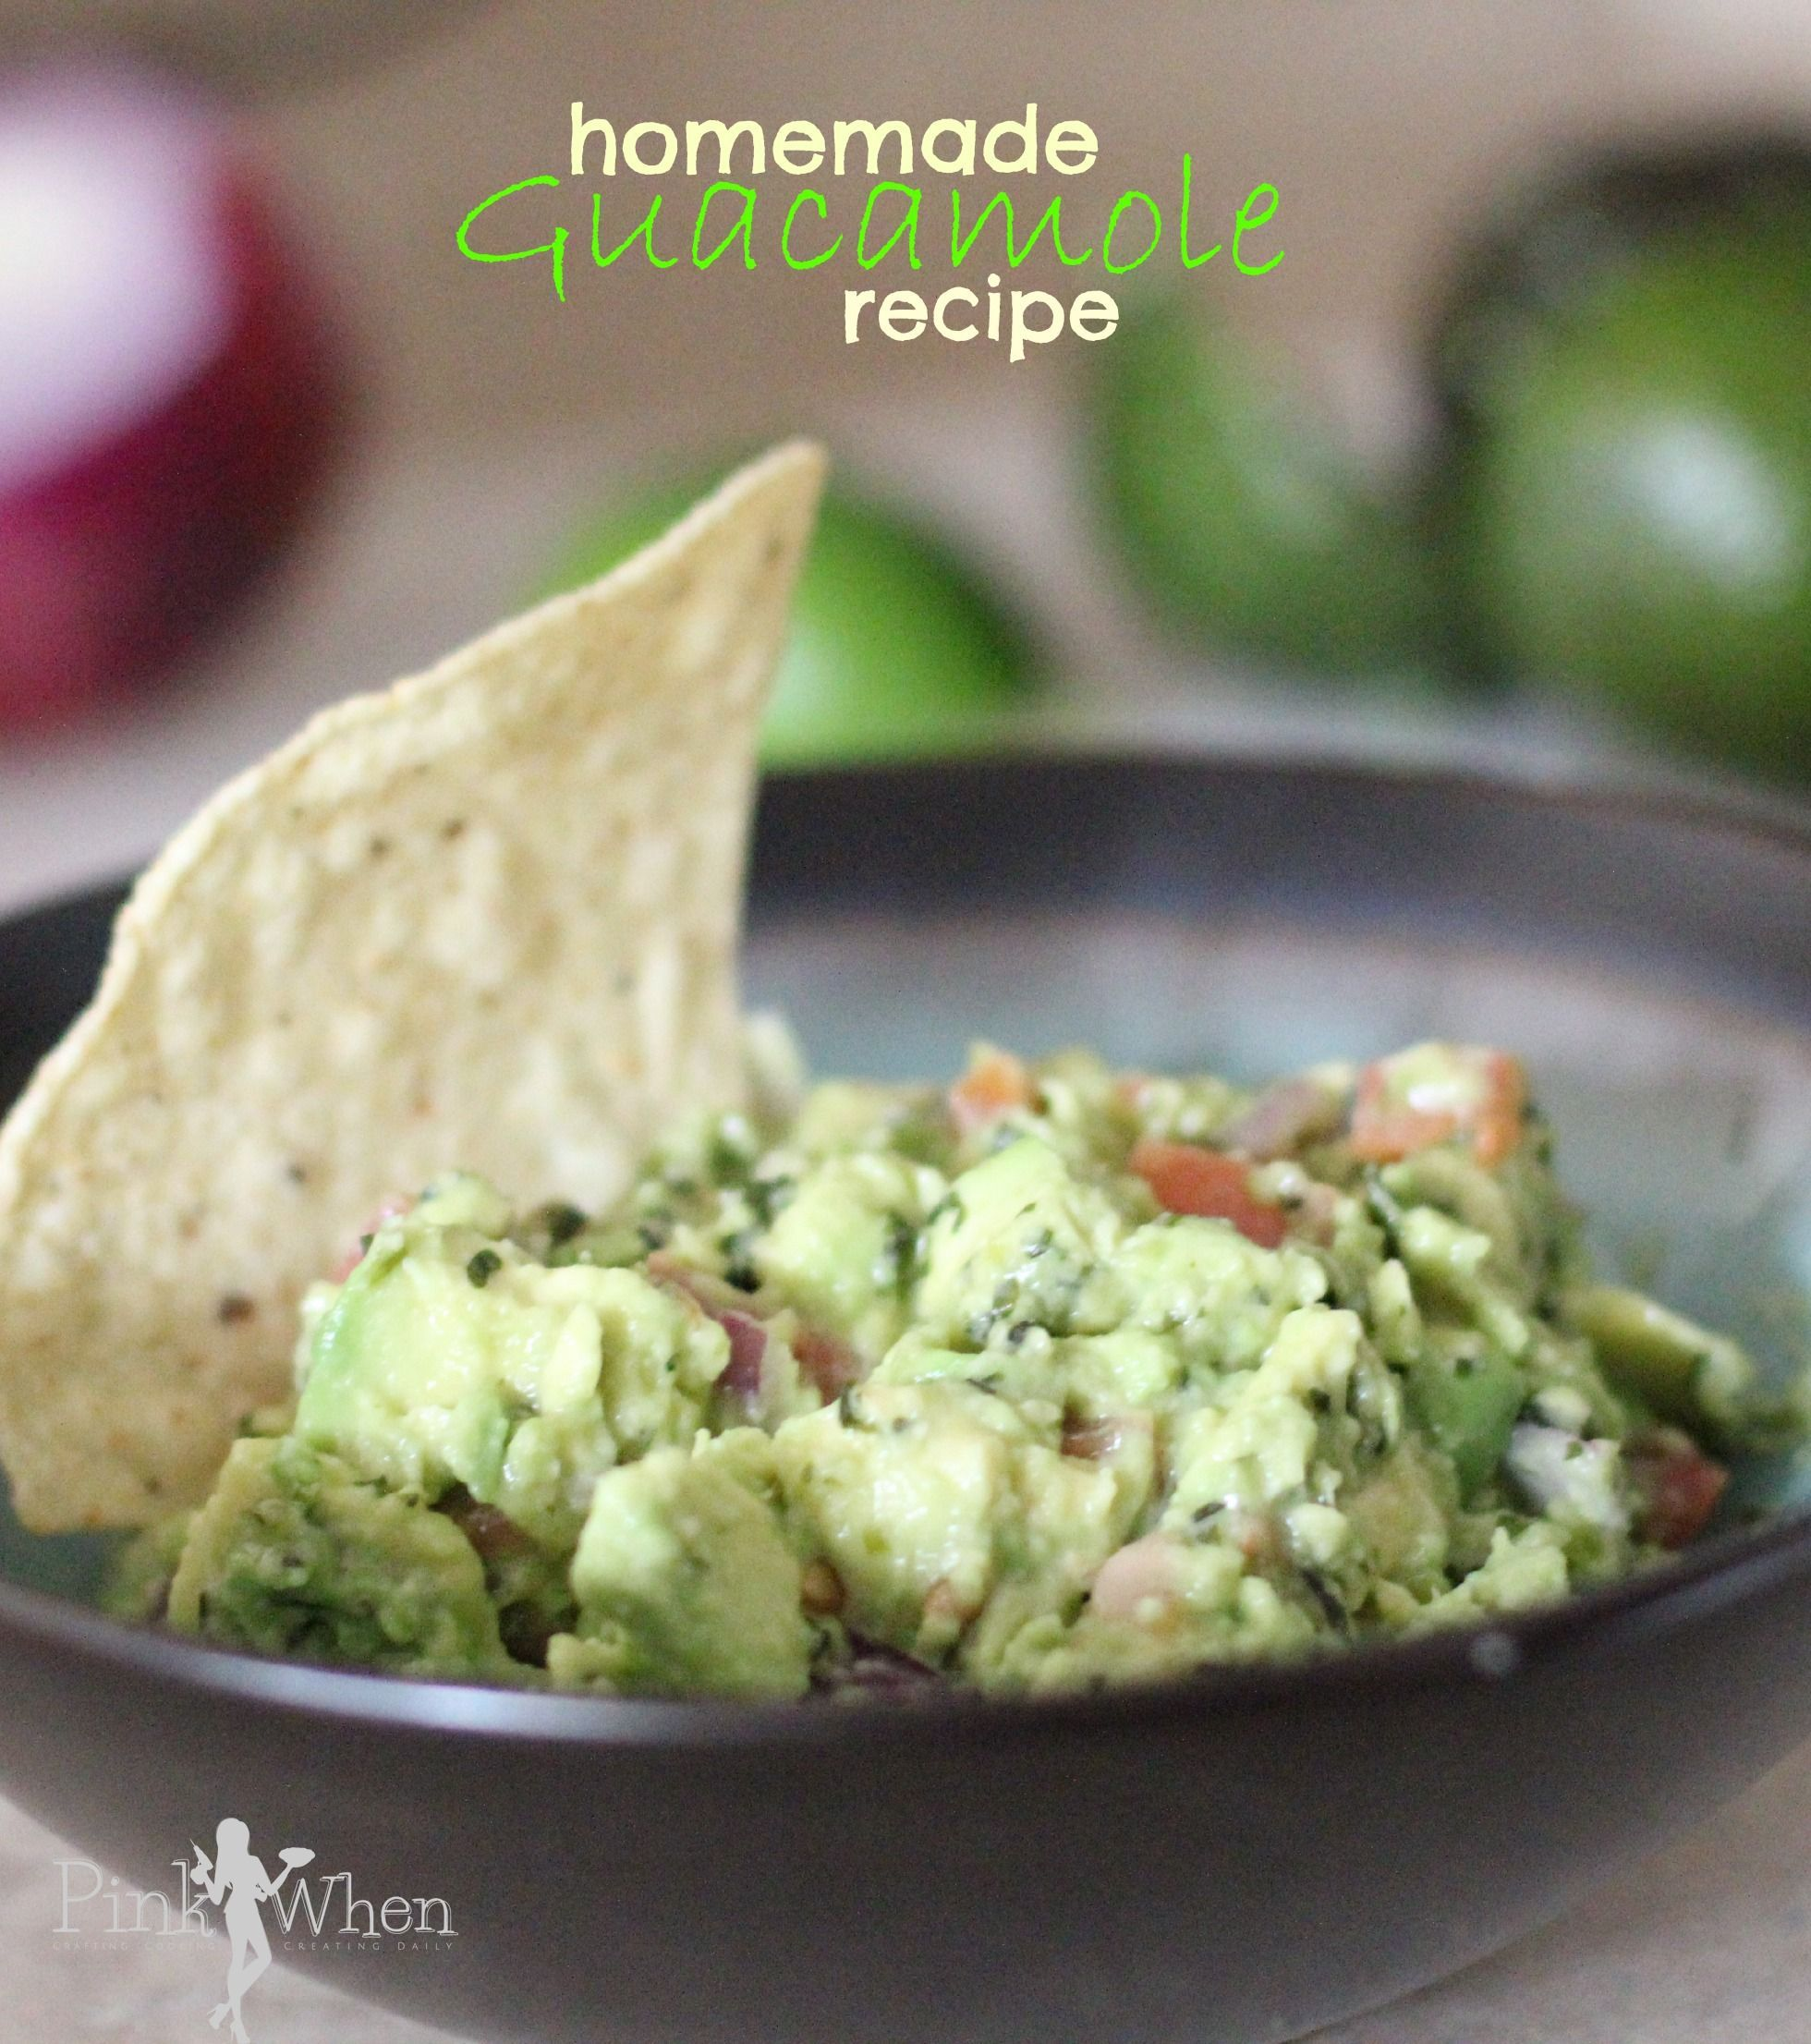 A Delicious Homemade Guacamole Recipe Perfect For Cinco De Mayo Guacamole Homemade Homemade Guacamole In 2020 Homemade Guacamole Recipe Homemade Guacamole Recipes